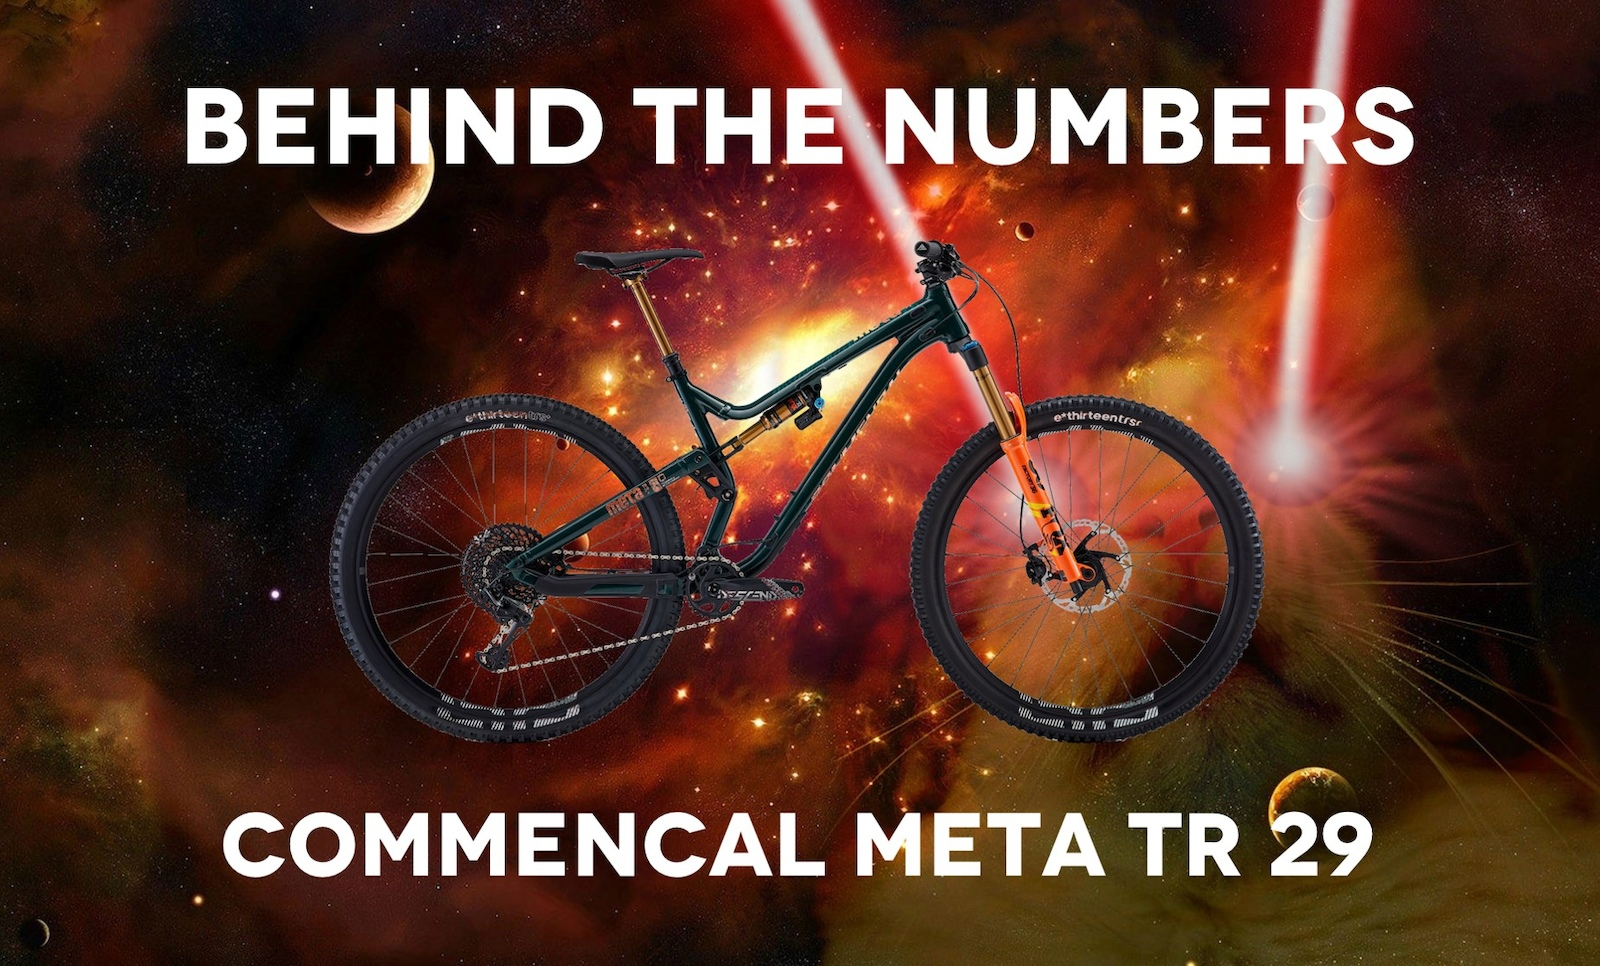 Behind the Numbers - Commencal Meta TR 29